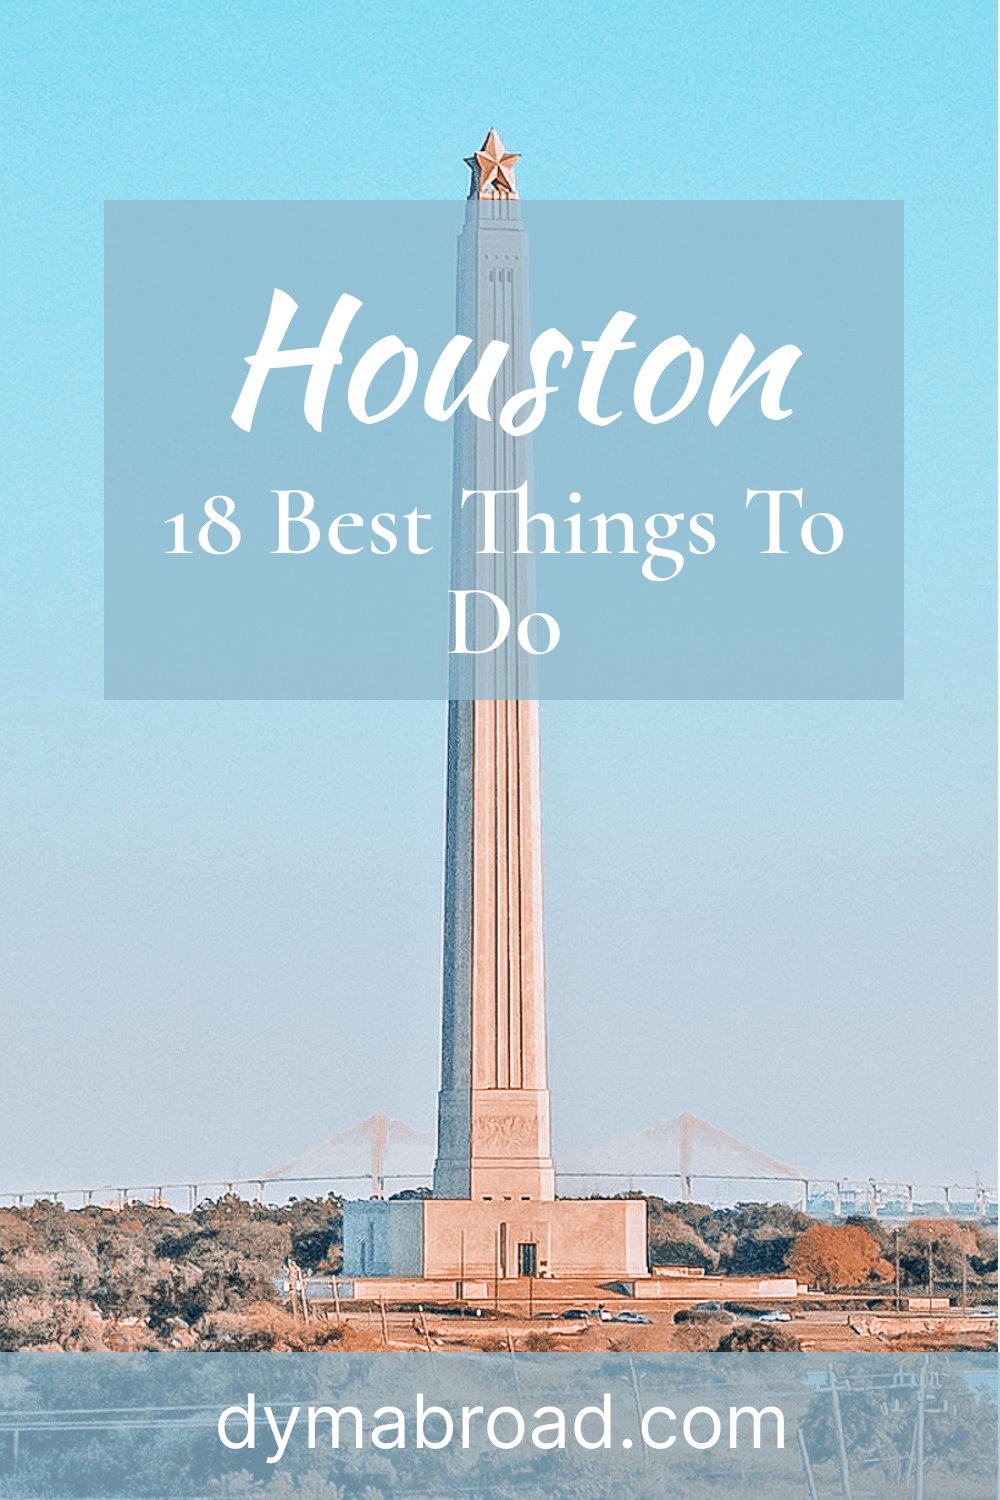 18 Best Things To Do in Houston Pinterest Image